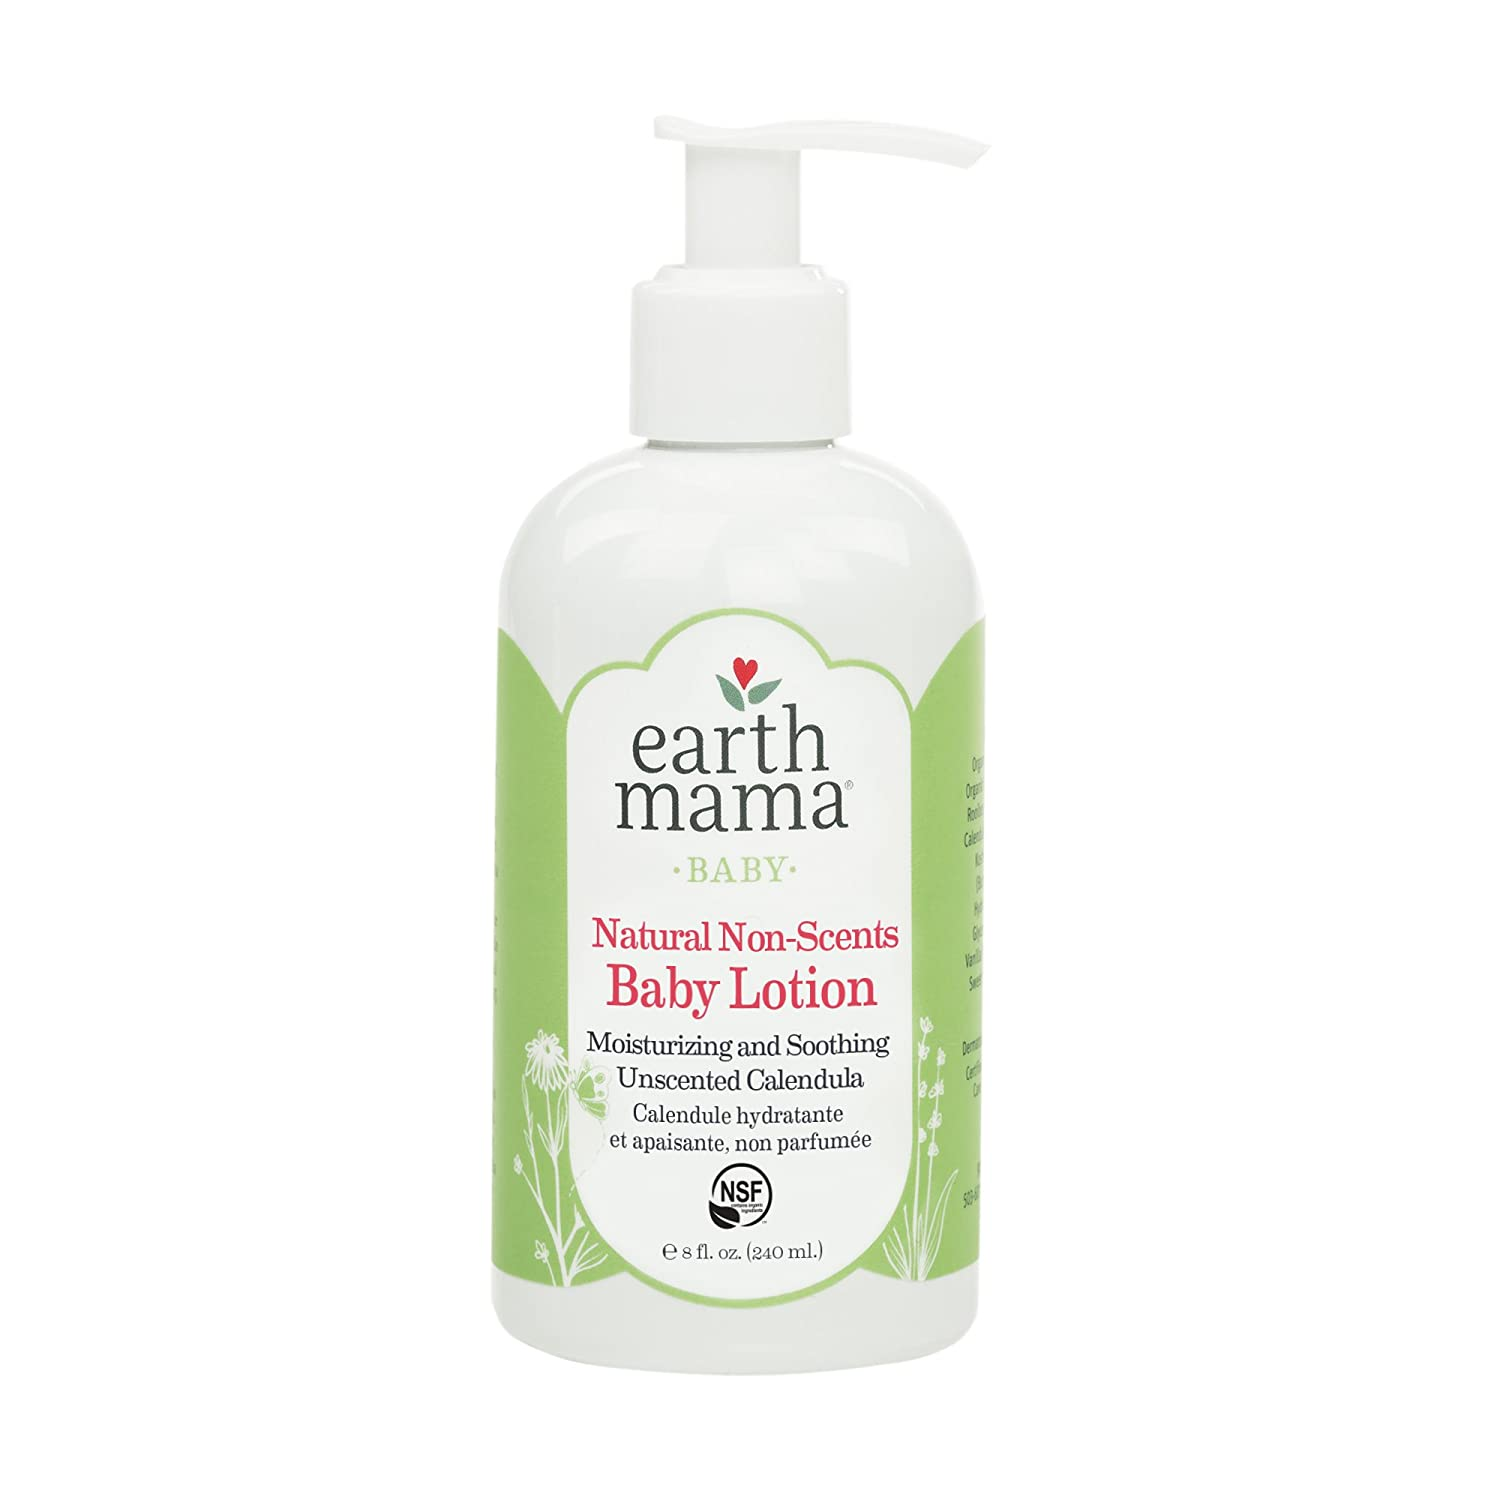 Natural Non-Scents Baby Lotion with Organic Calendula, 8 Fluid Ounce Earth Mama Angel Baby